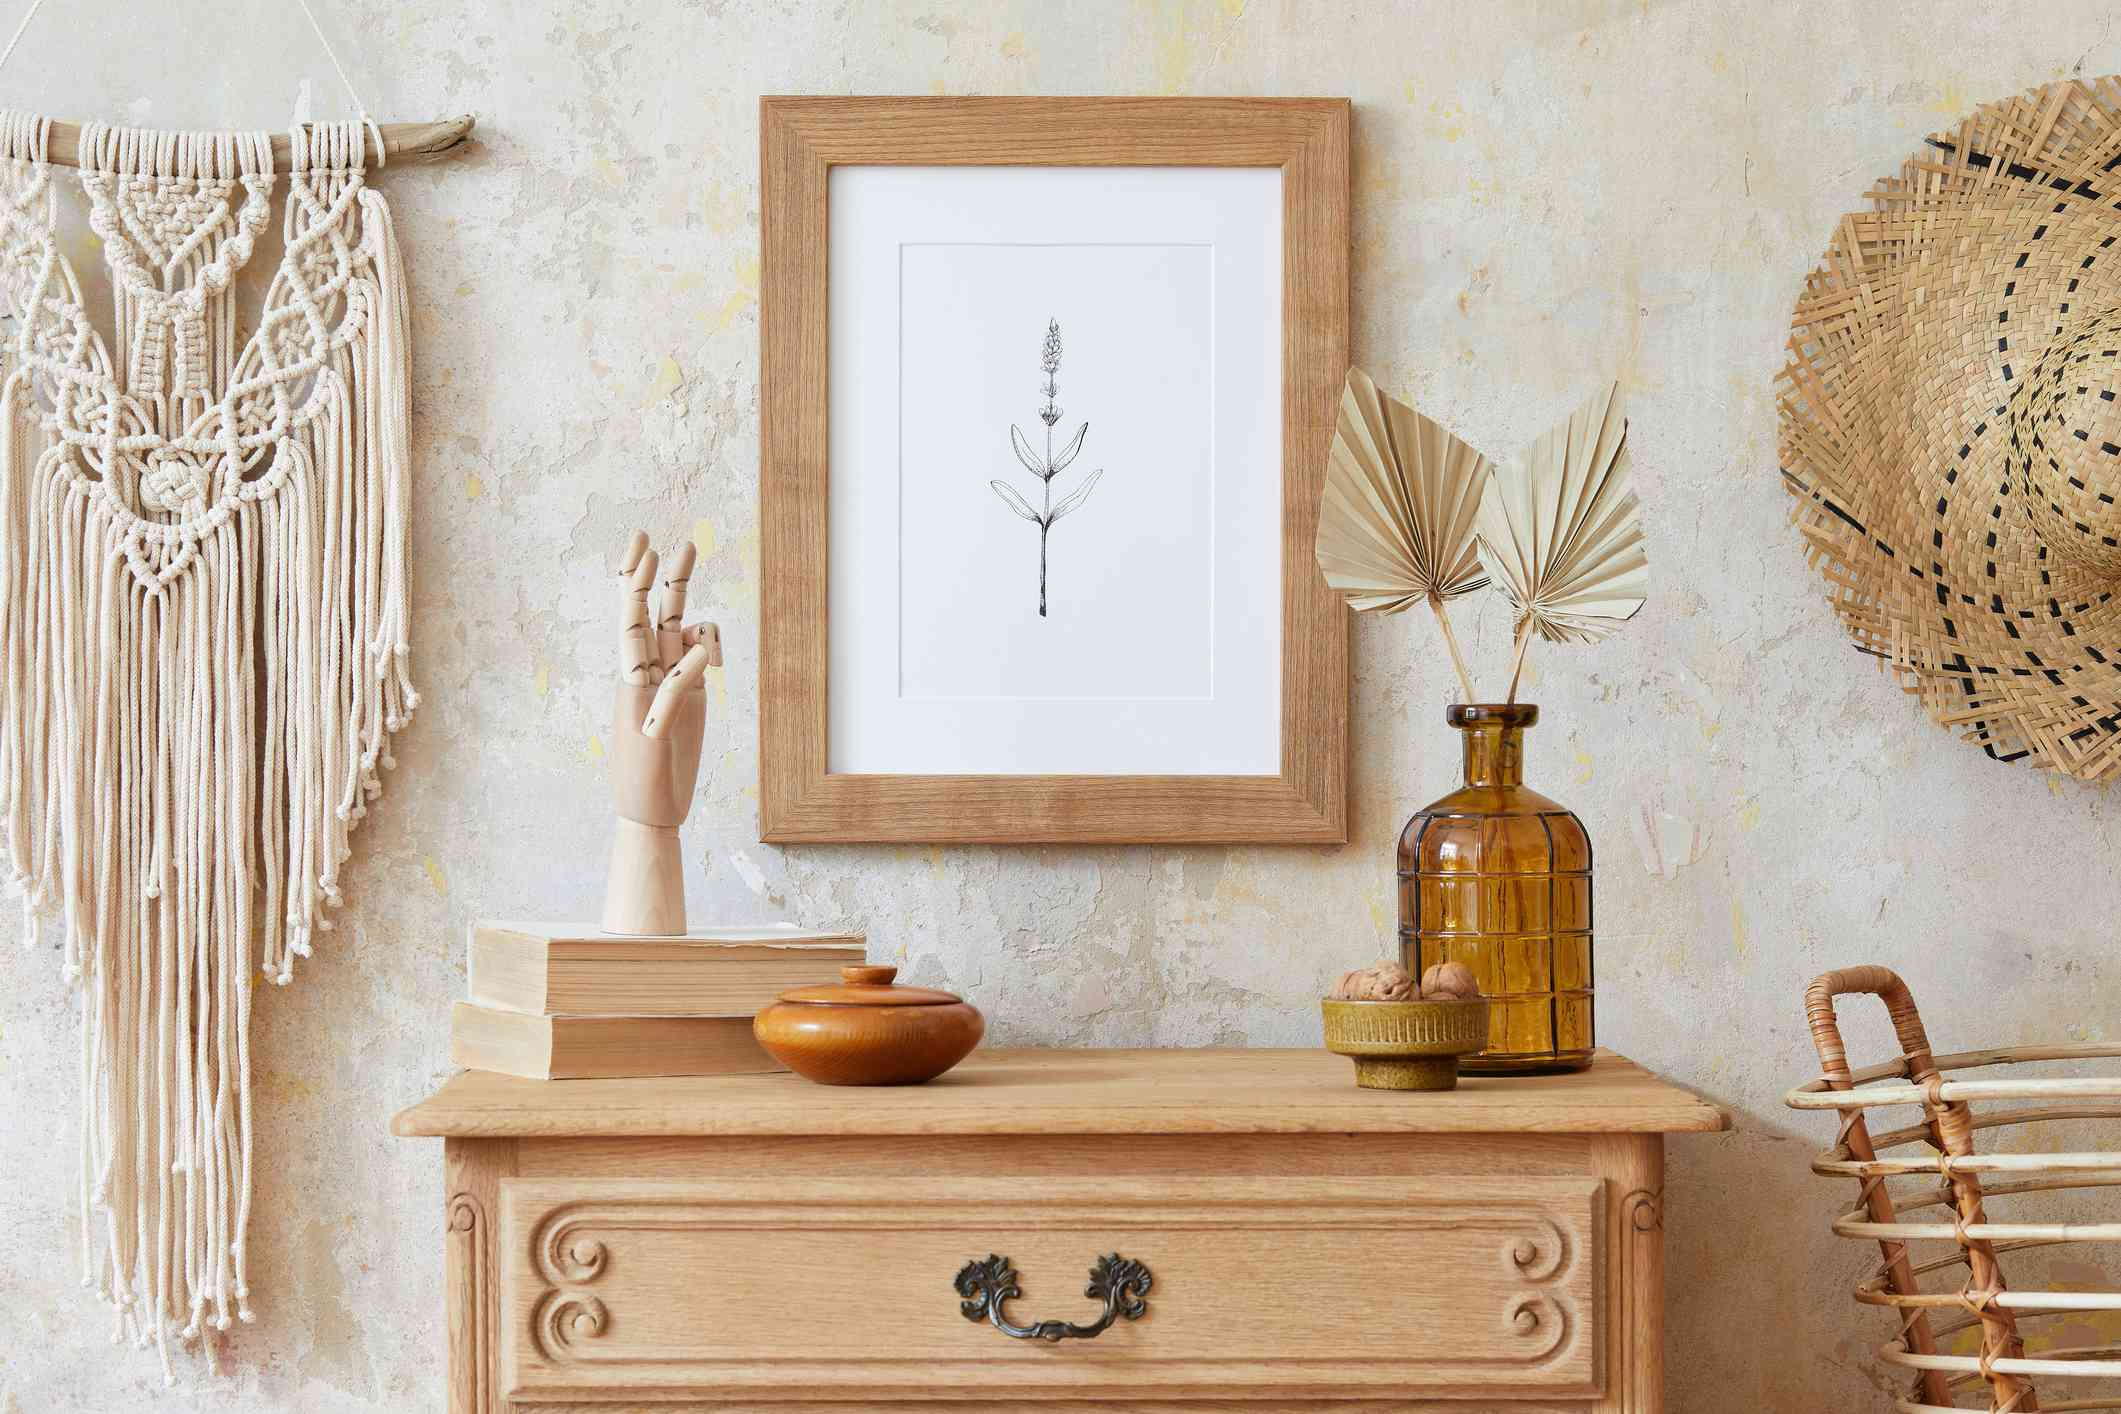 A display of boho design accents